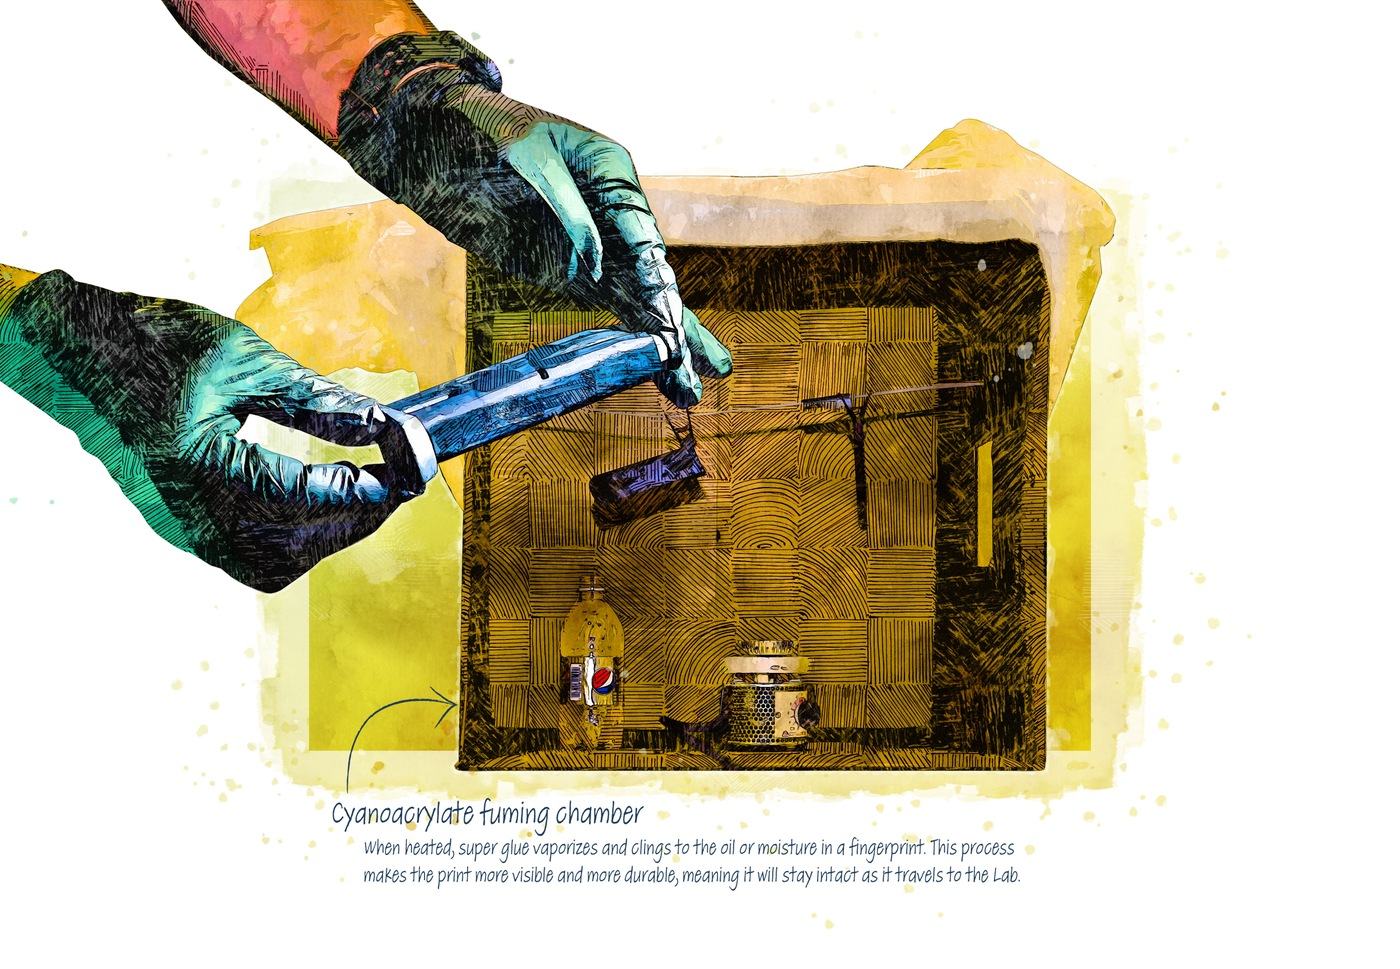 A crime lab in Japan discovered that super glue fumes can enhance and preserve fingerprints on a hard surface.